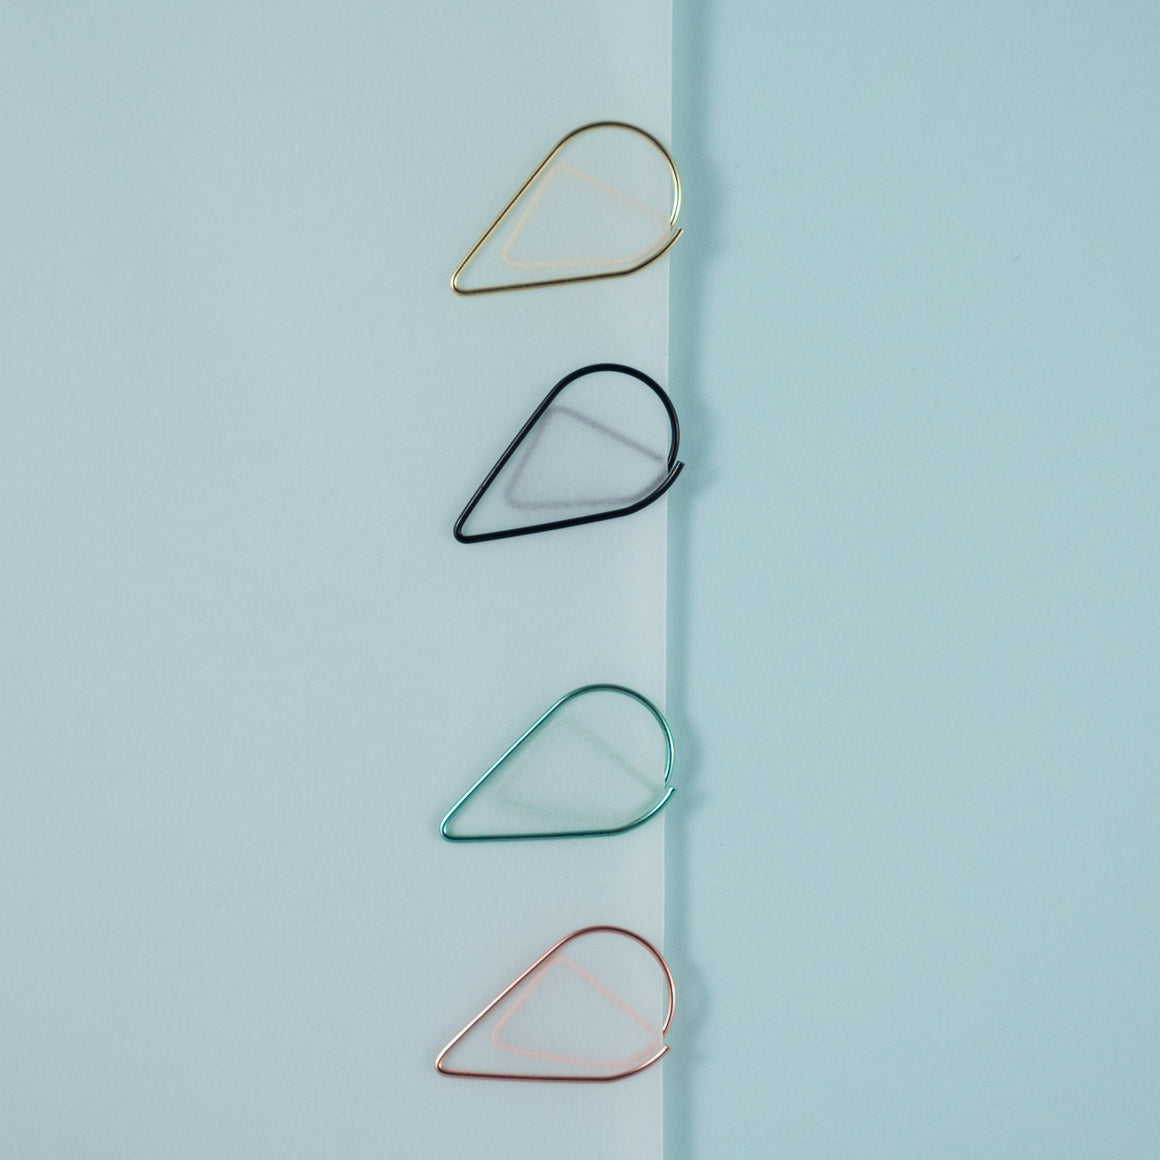 raindrop shaped paper clip